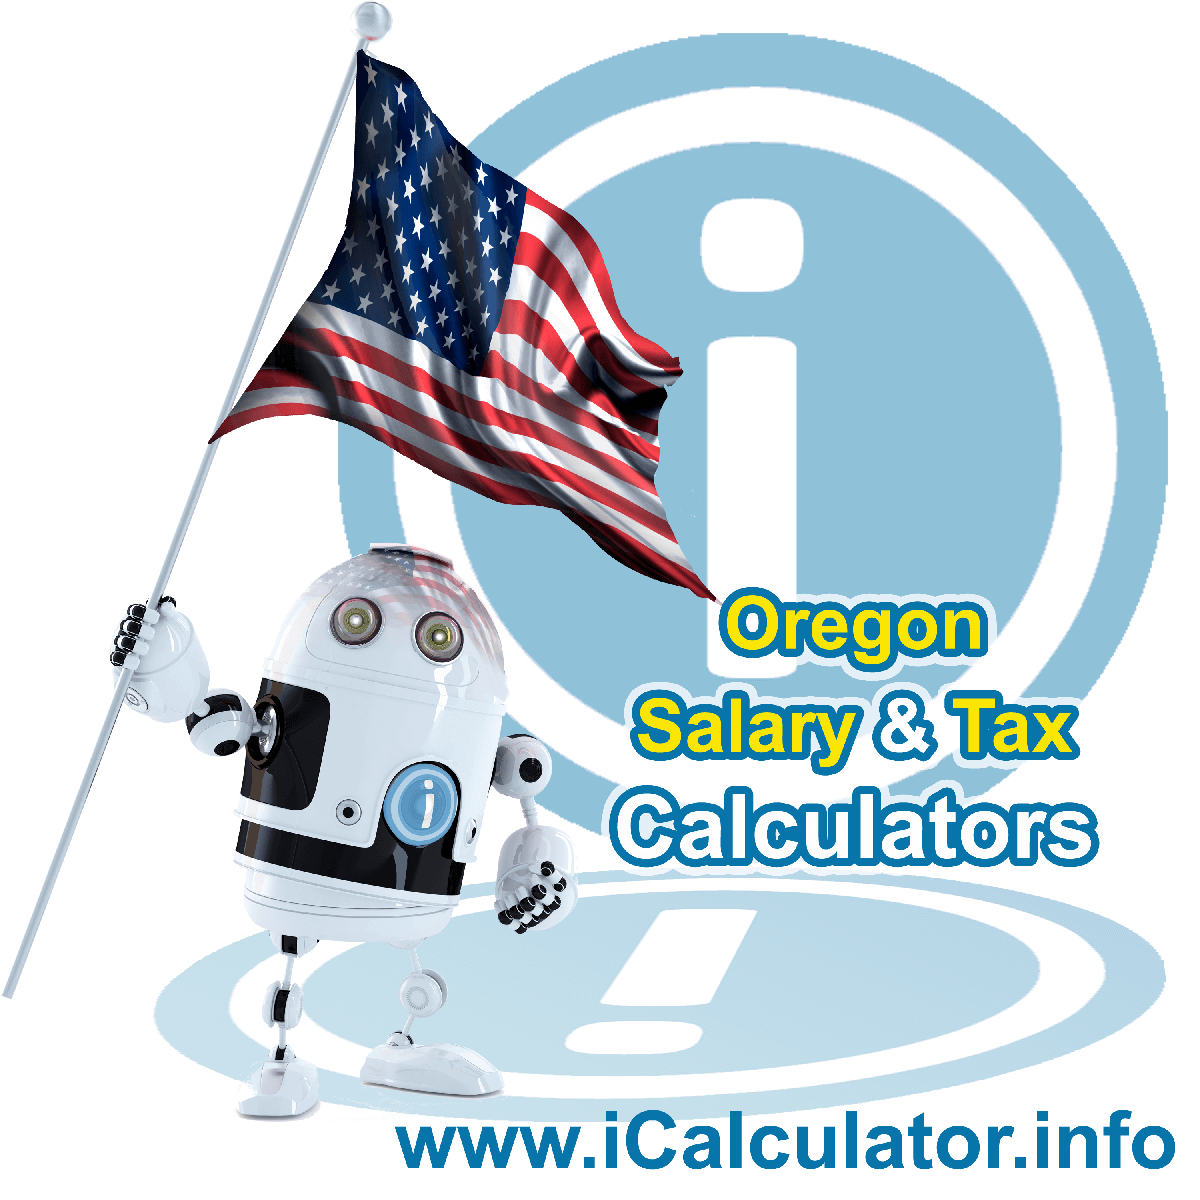 Oregon Salary Calculator 2021 | iCalculator™ | The Oregon Salary Calculator allows you to quickly calculate your salary after tax including Oregon State Tax, Federal State Tax, Medicare Deductions, Social Security, Capital Gains and other income tax and salary deductions complete with supporting Oregon state tax tables